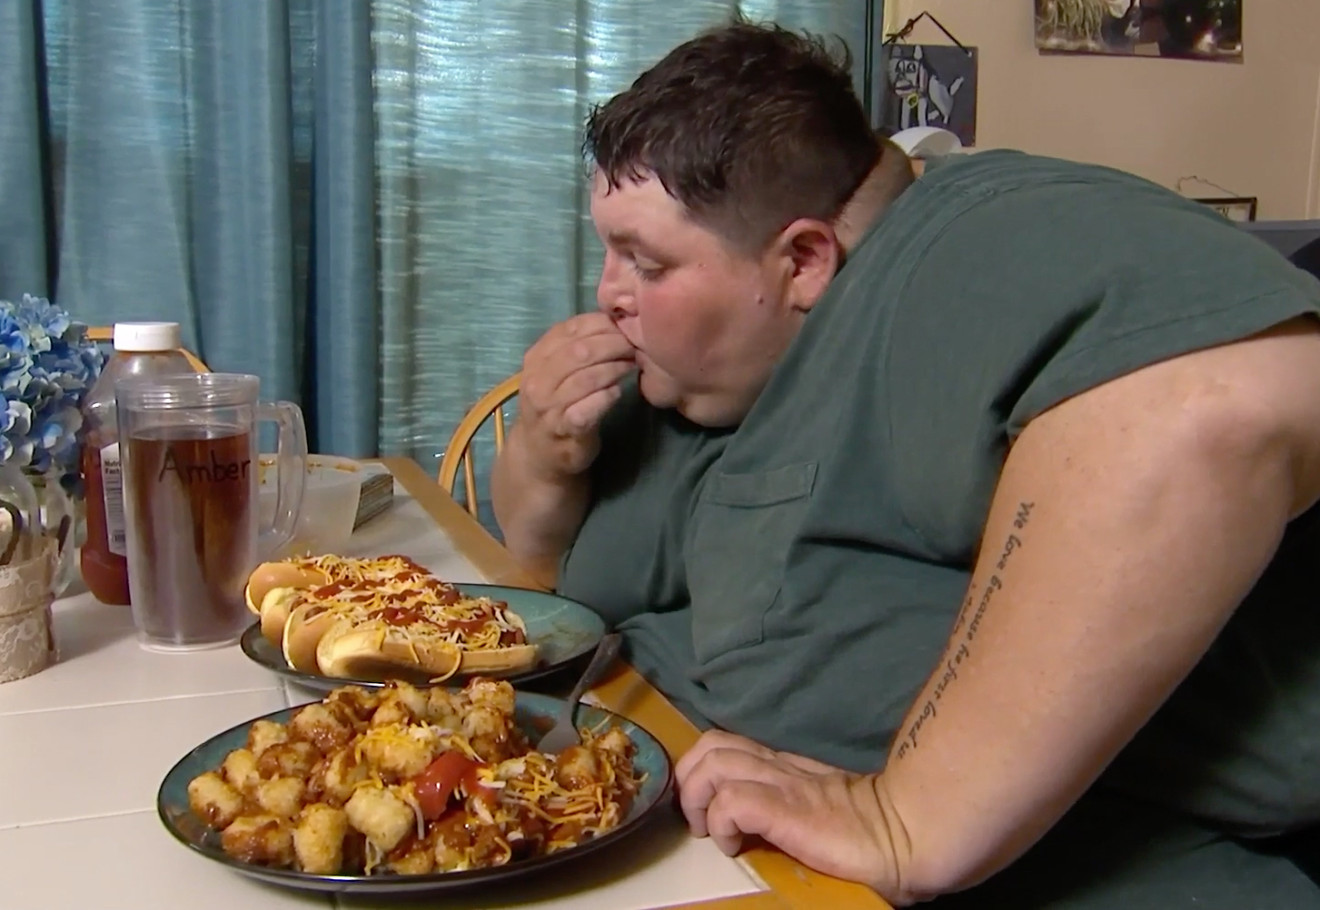 600 Pound Life: Why Get Surgery if They Lose Weight on Their Own?